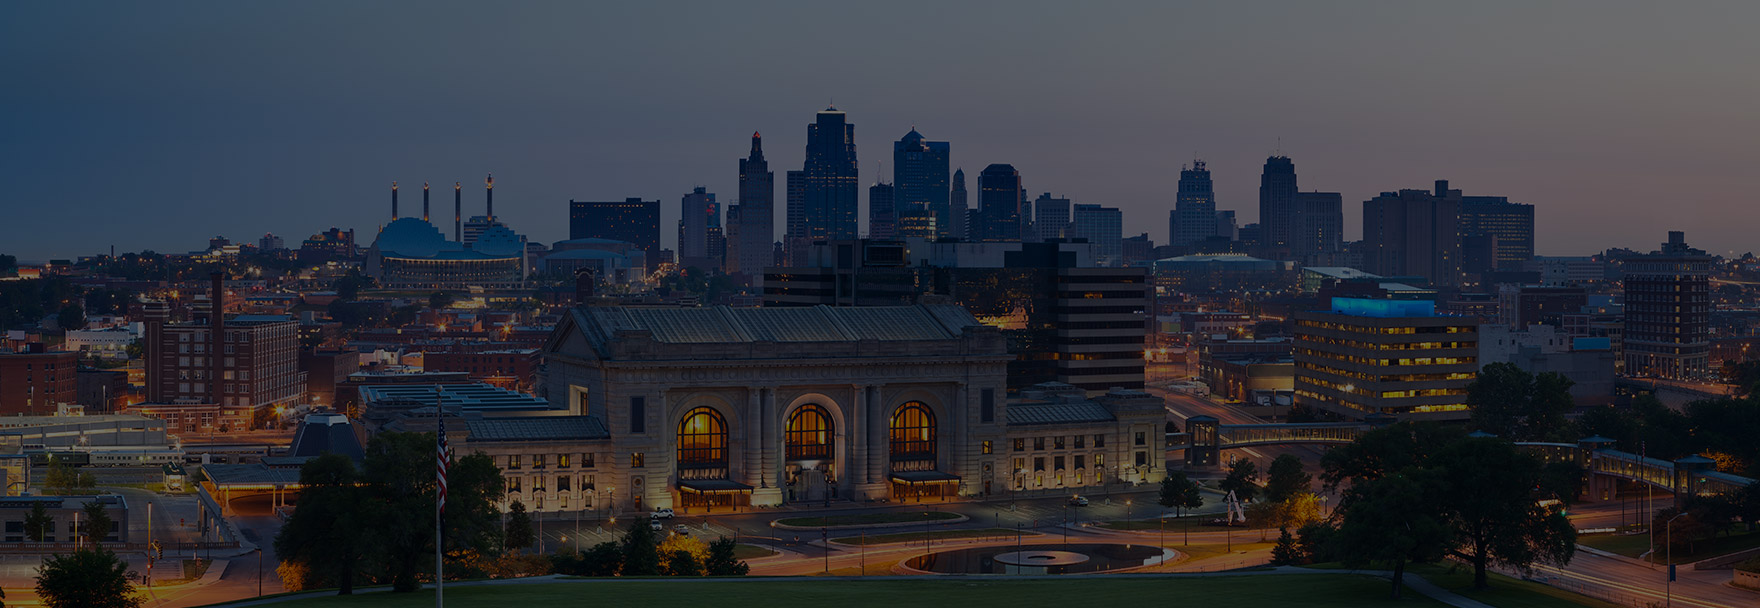 Kansas City Vacation Packages (MCI) - Southwest Vacations